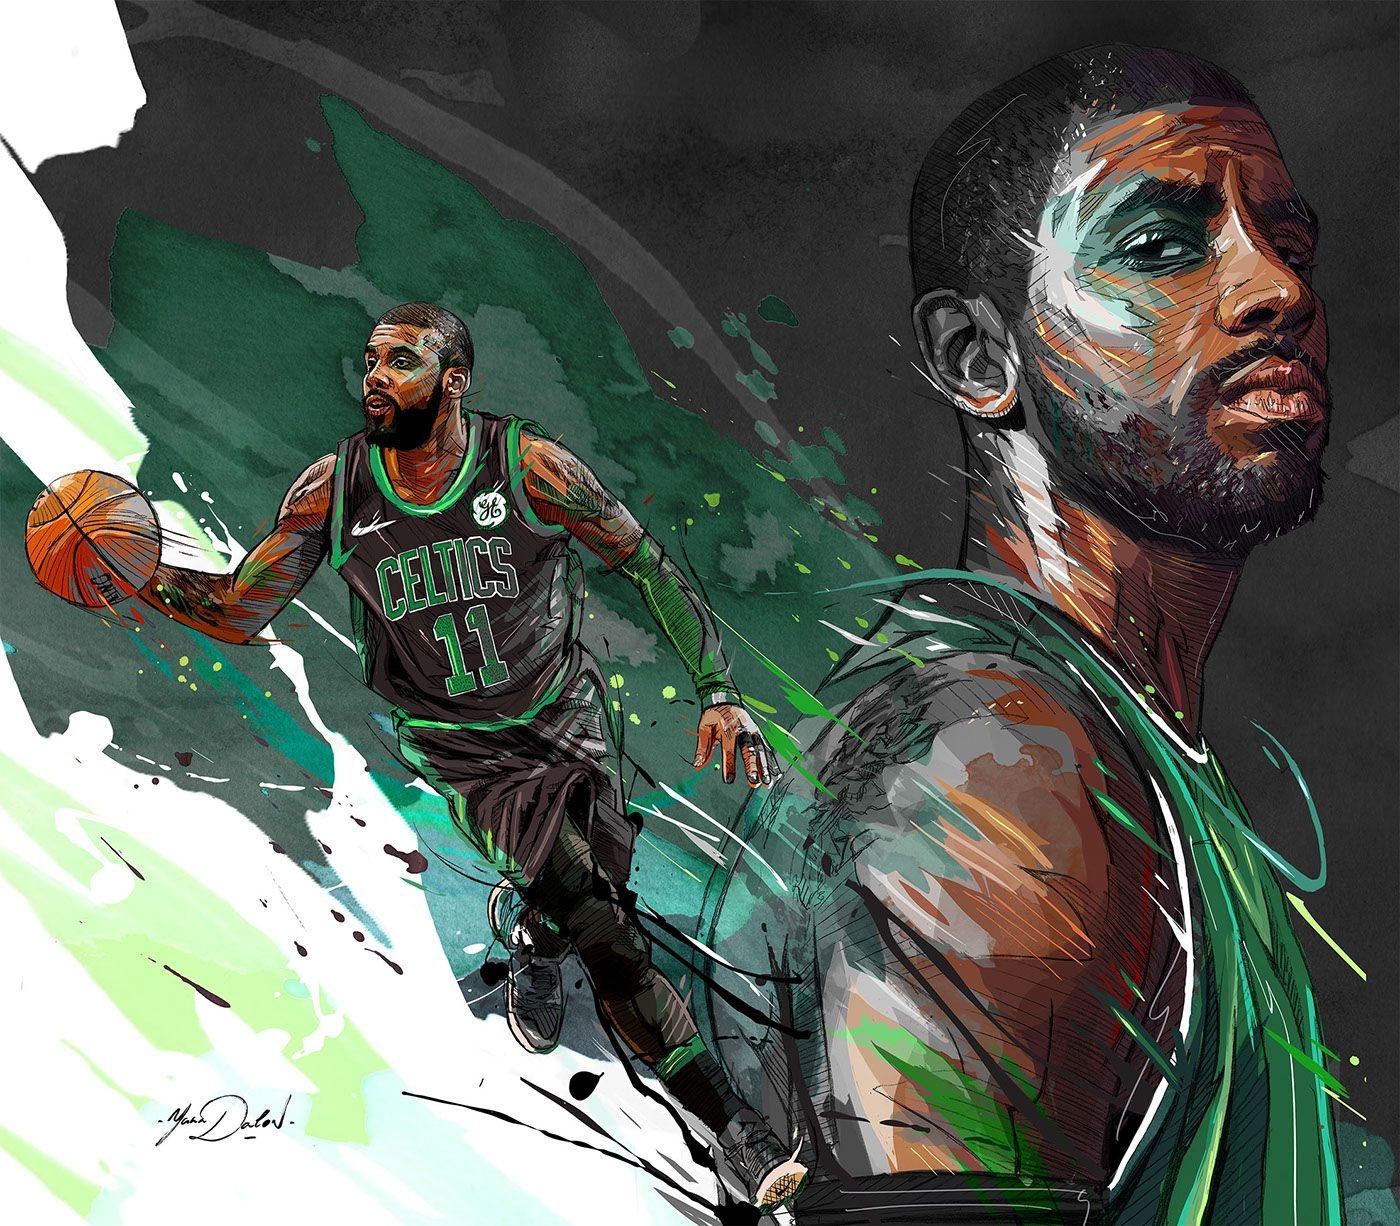 My painting of the famous player of the Boston Celtics